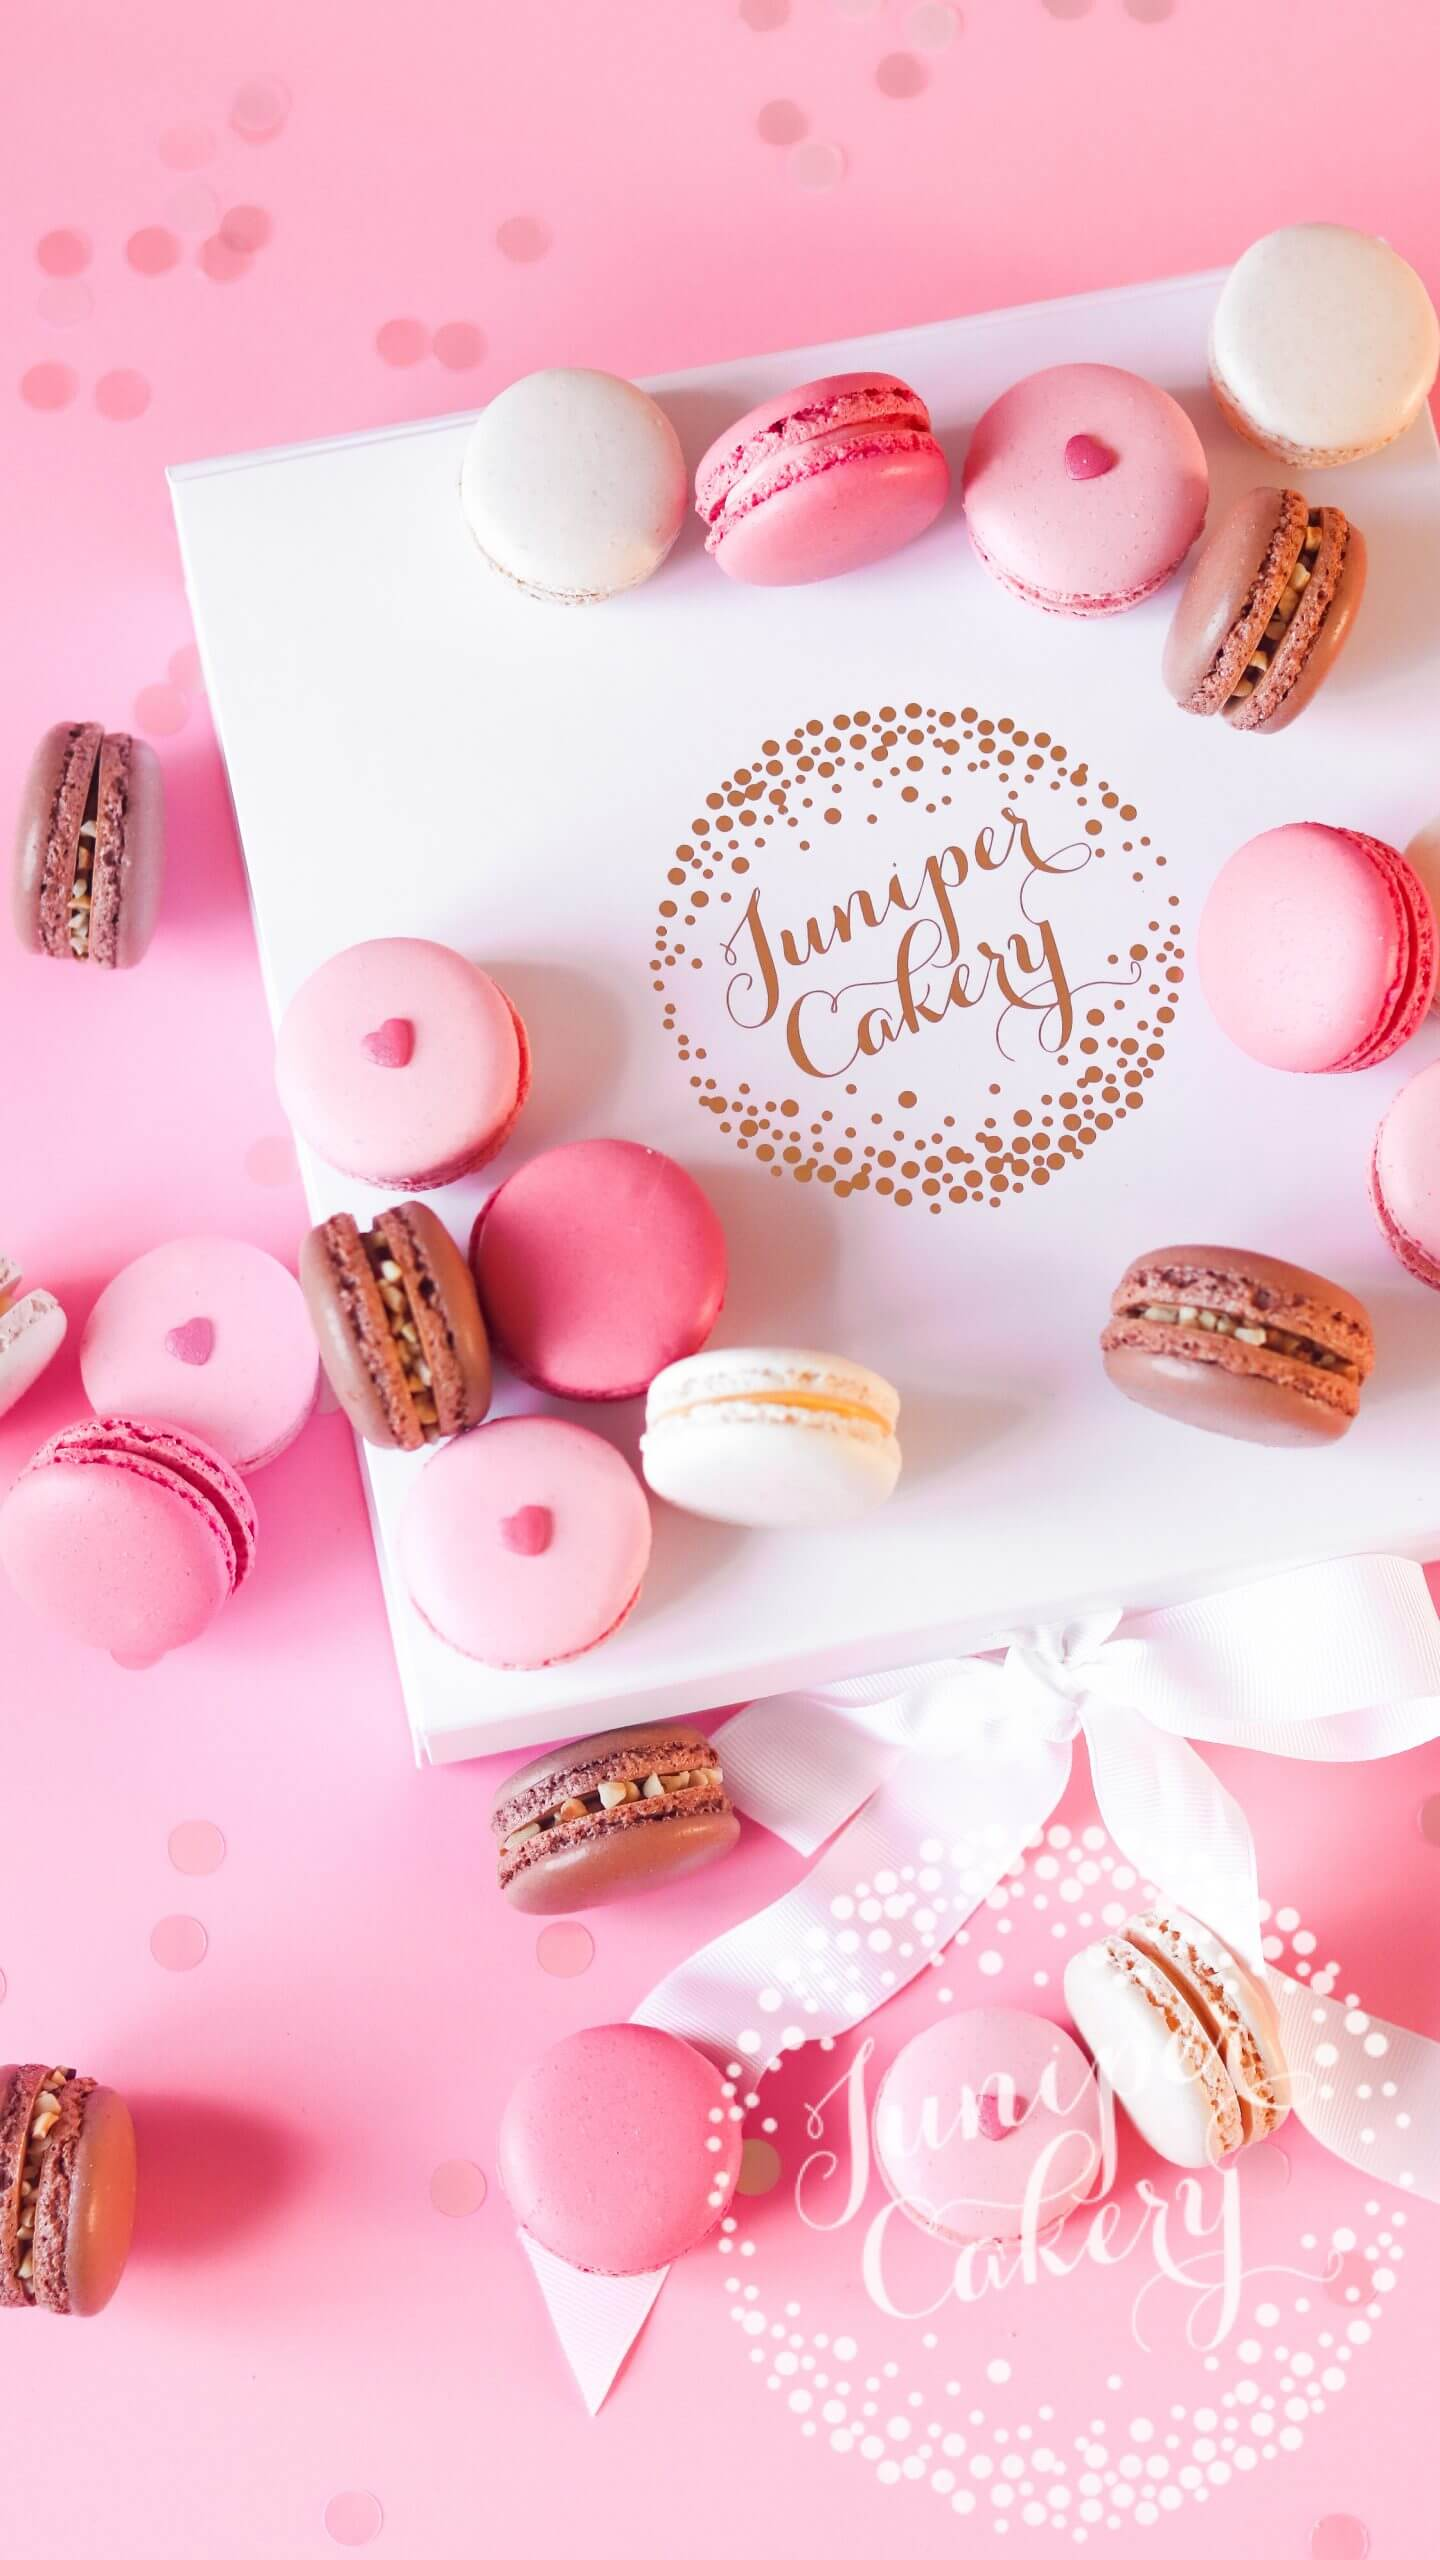 Pretty Valentine Macarons by Juniper Cakery